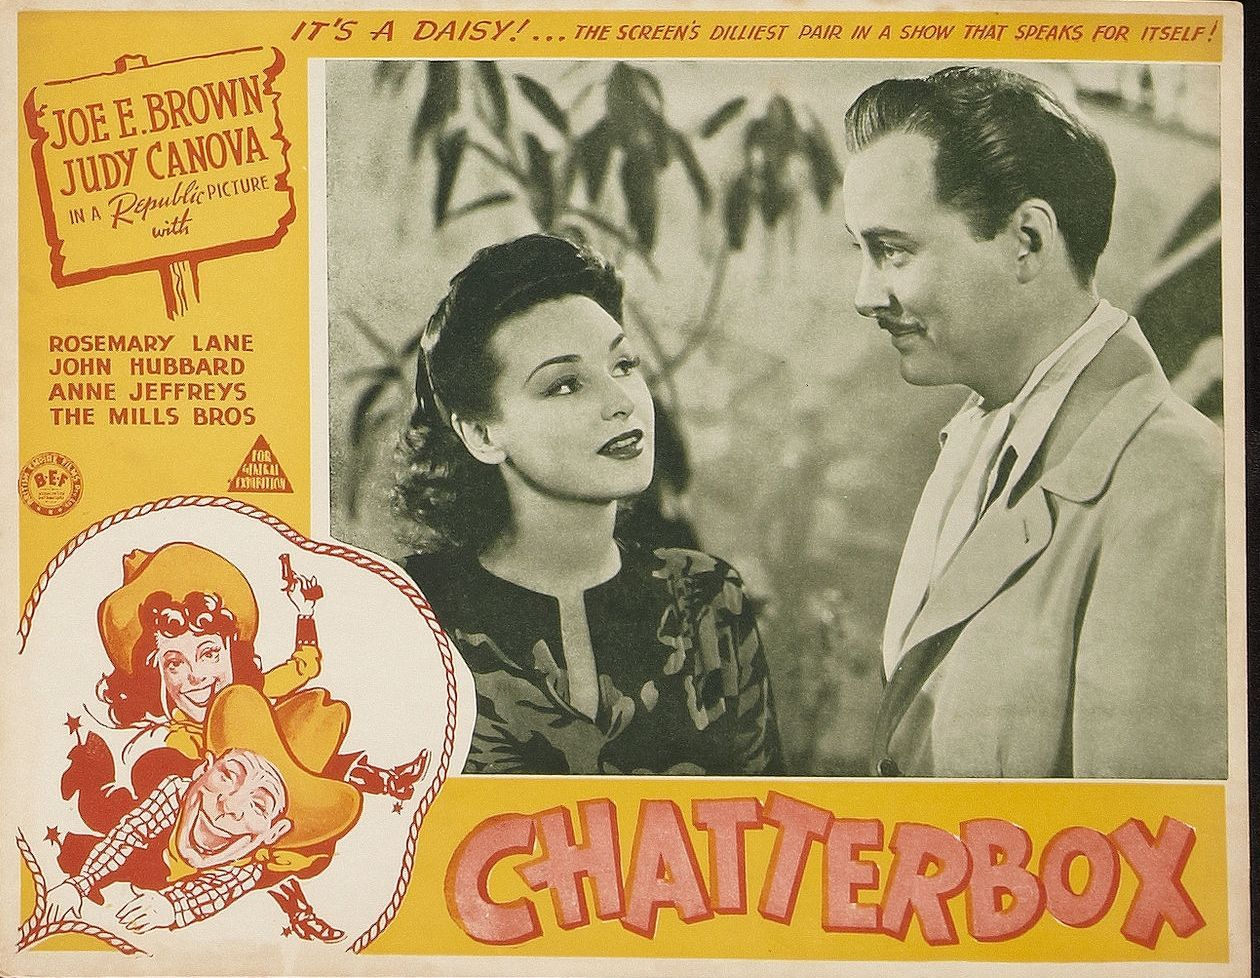 John Hubbard and Rosemary Lane in Chatterbox (1943)